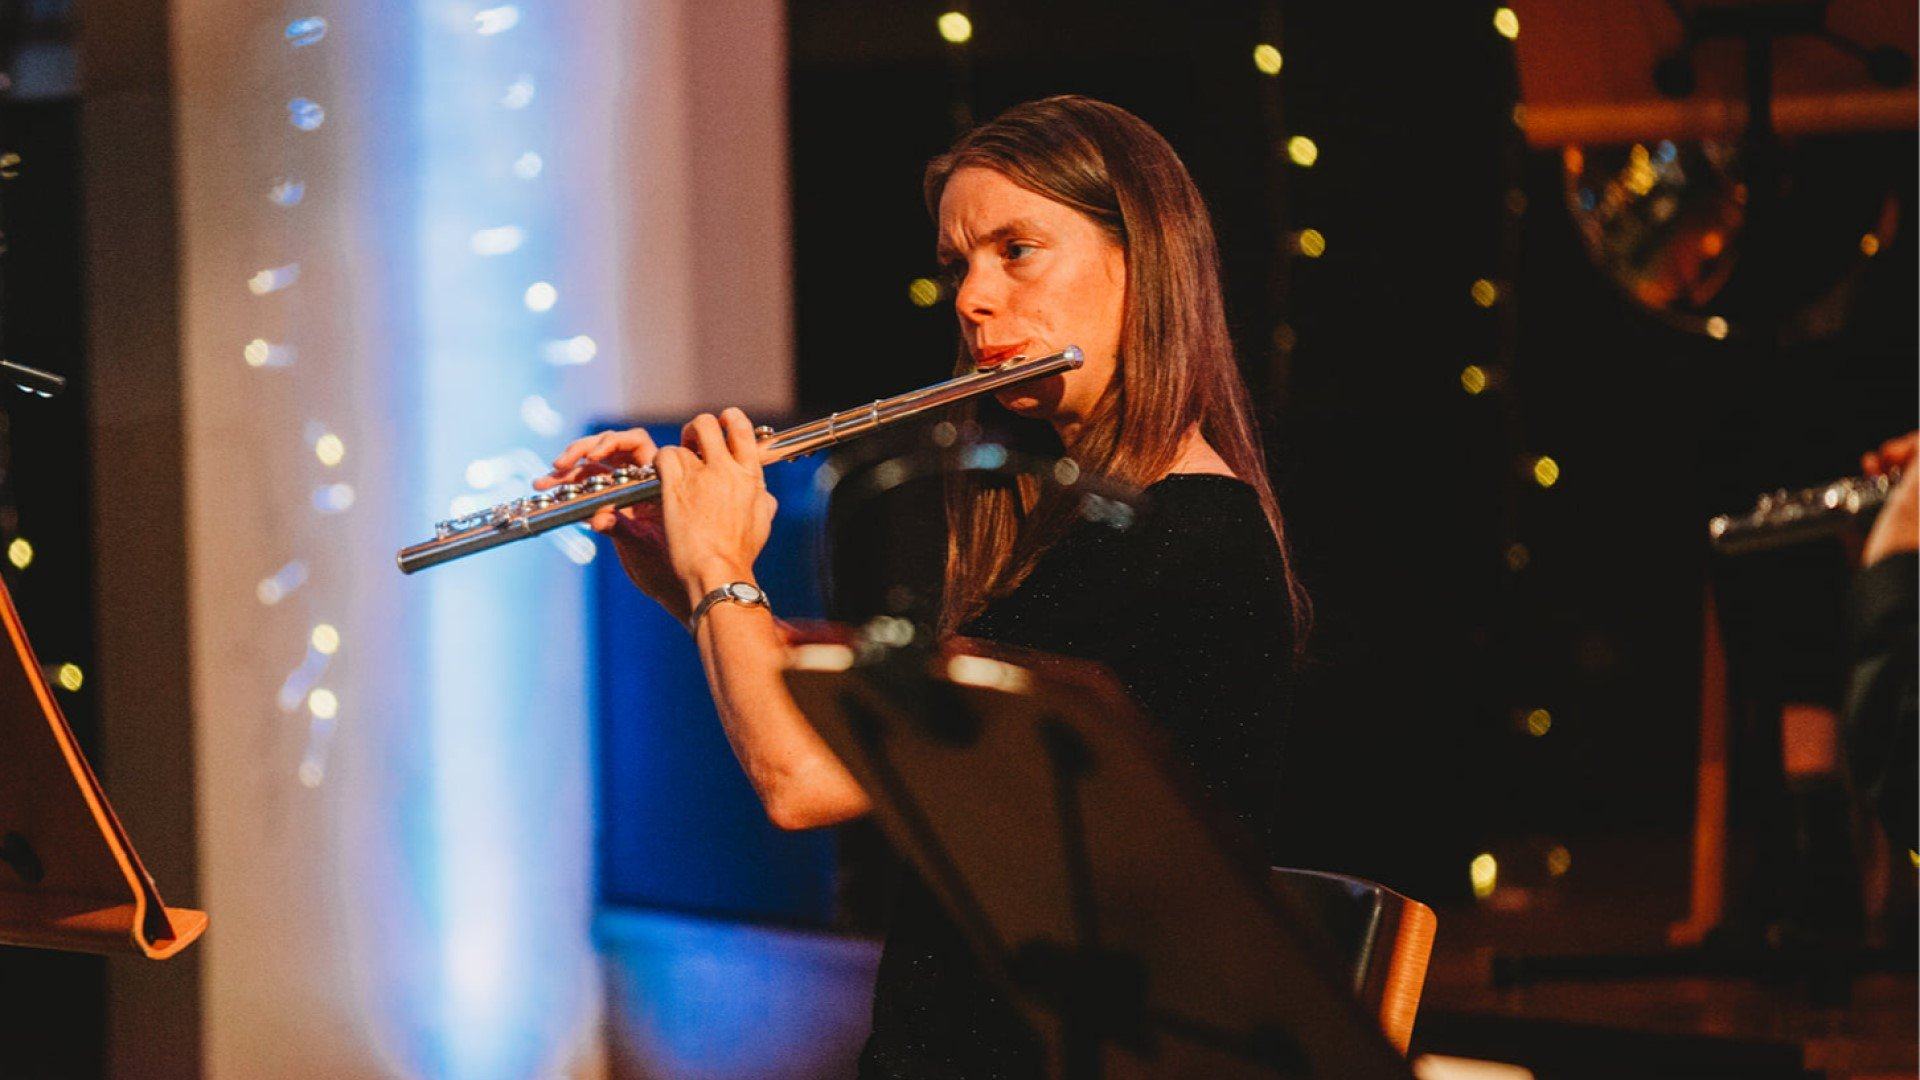 Oxford Proms - Clarinet Dreams at University Church of St Mary the Virgin featuring Lucy Downer